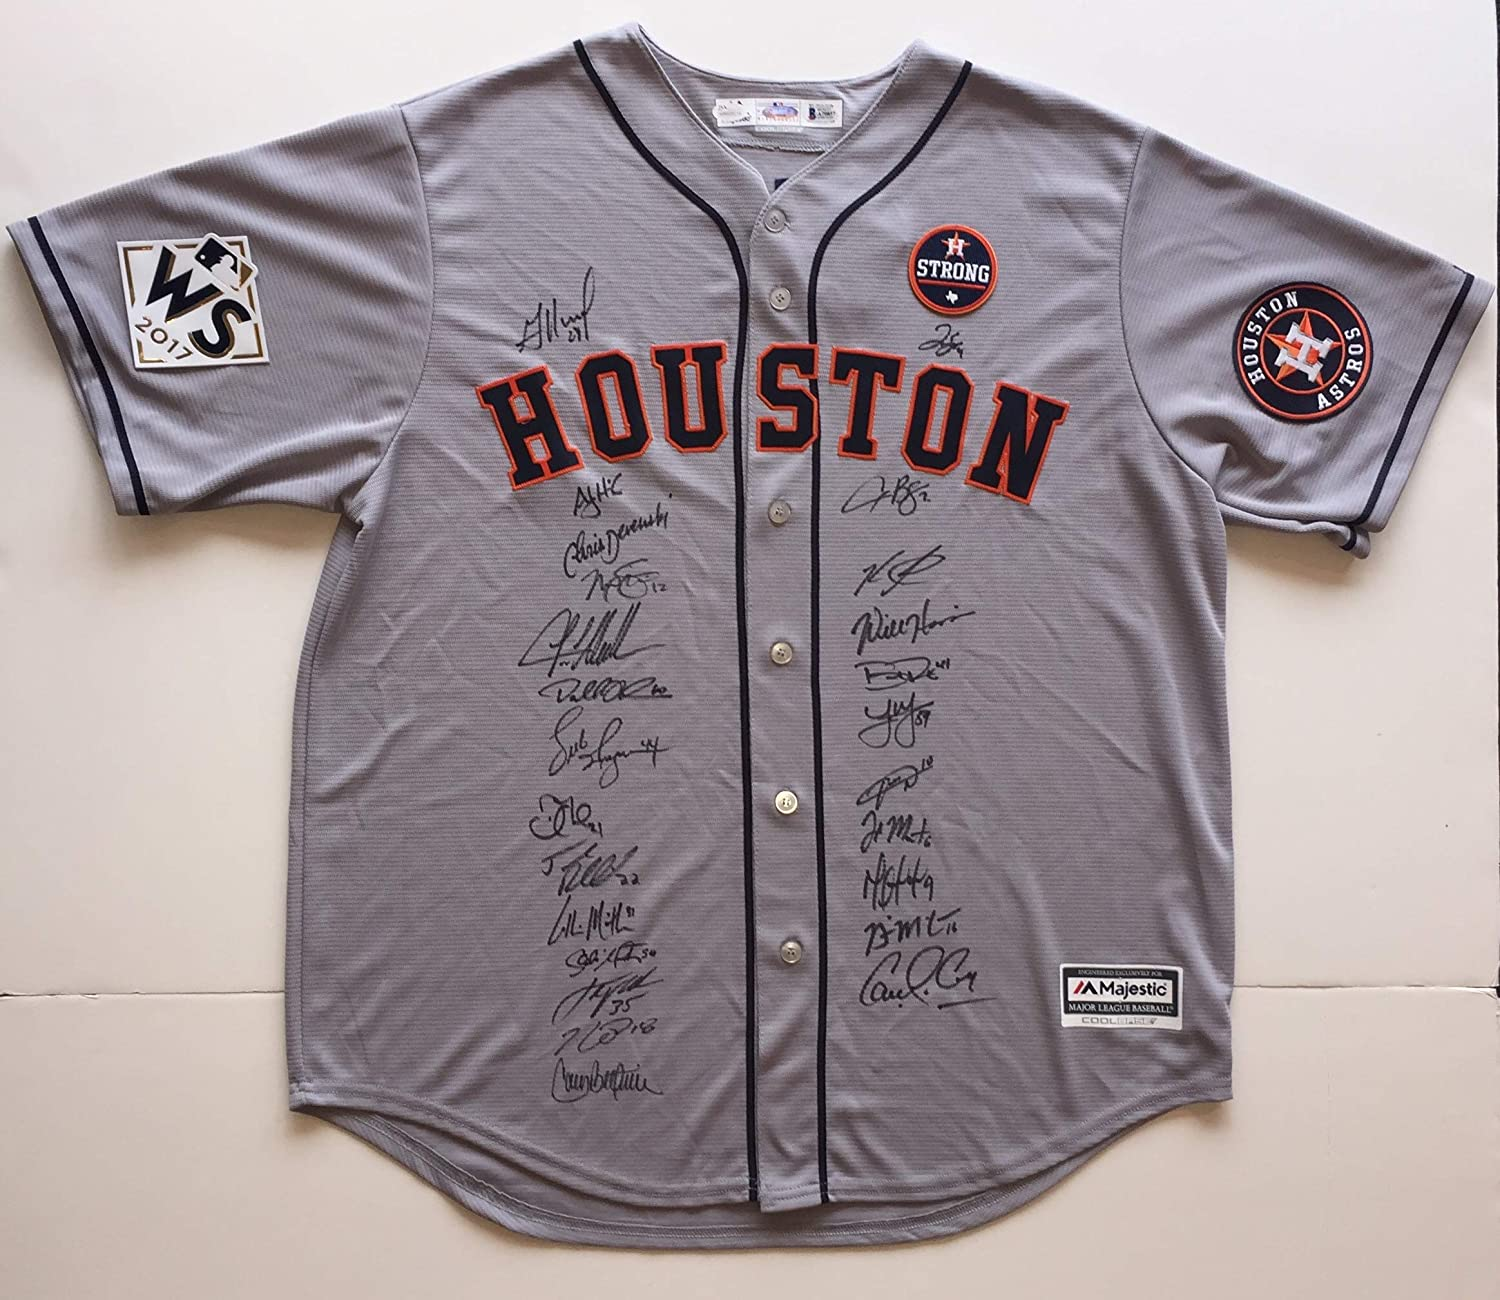 Houston Astros 2017 World Series Champion Team Autographed Jersey. Signed  at paid private Autograph Sessions. Signed by 25. BAS JSA Coa s at Amazon s  Sports ... 1caf07edd